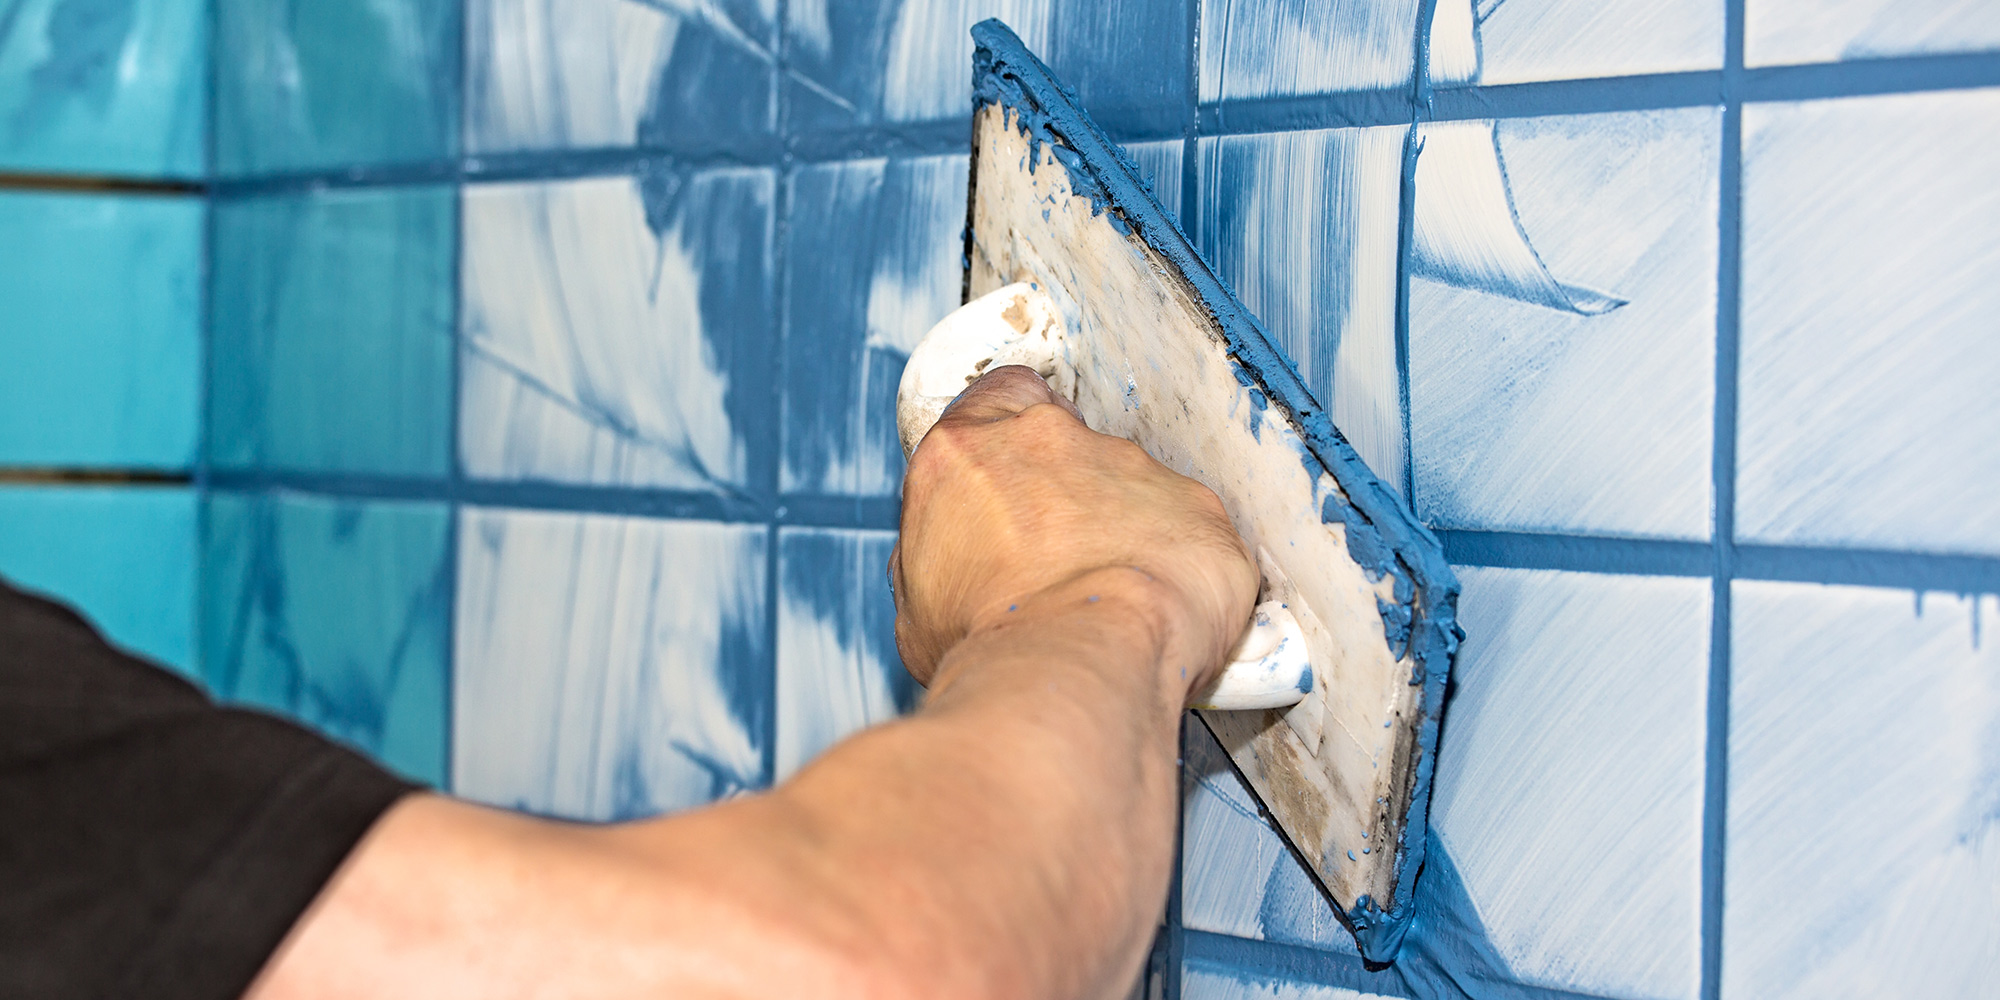 Tile fixing solutions Ireland. Tile grouts and silicon sealants.